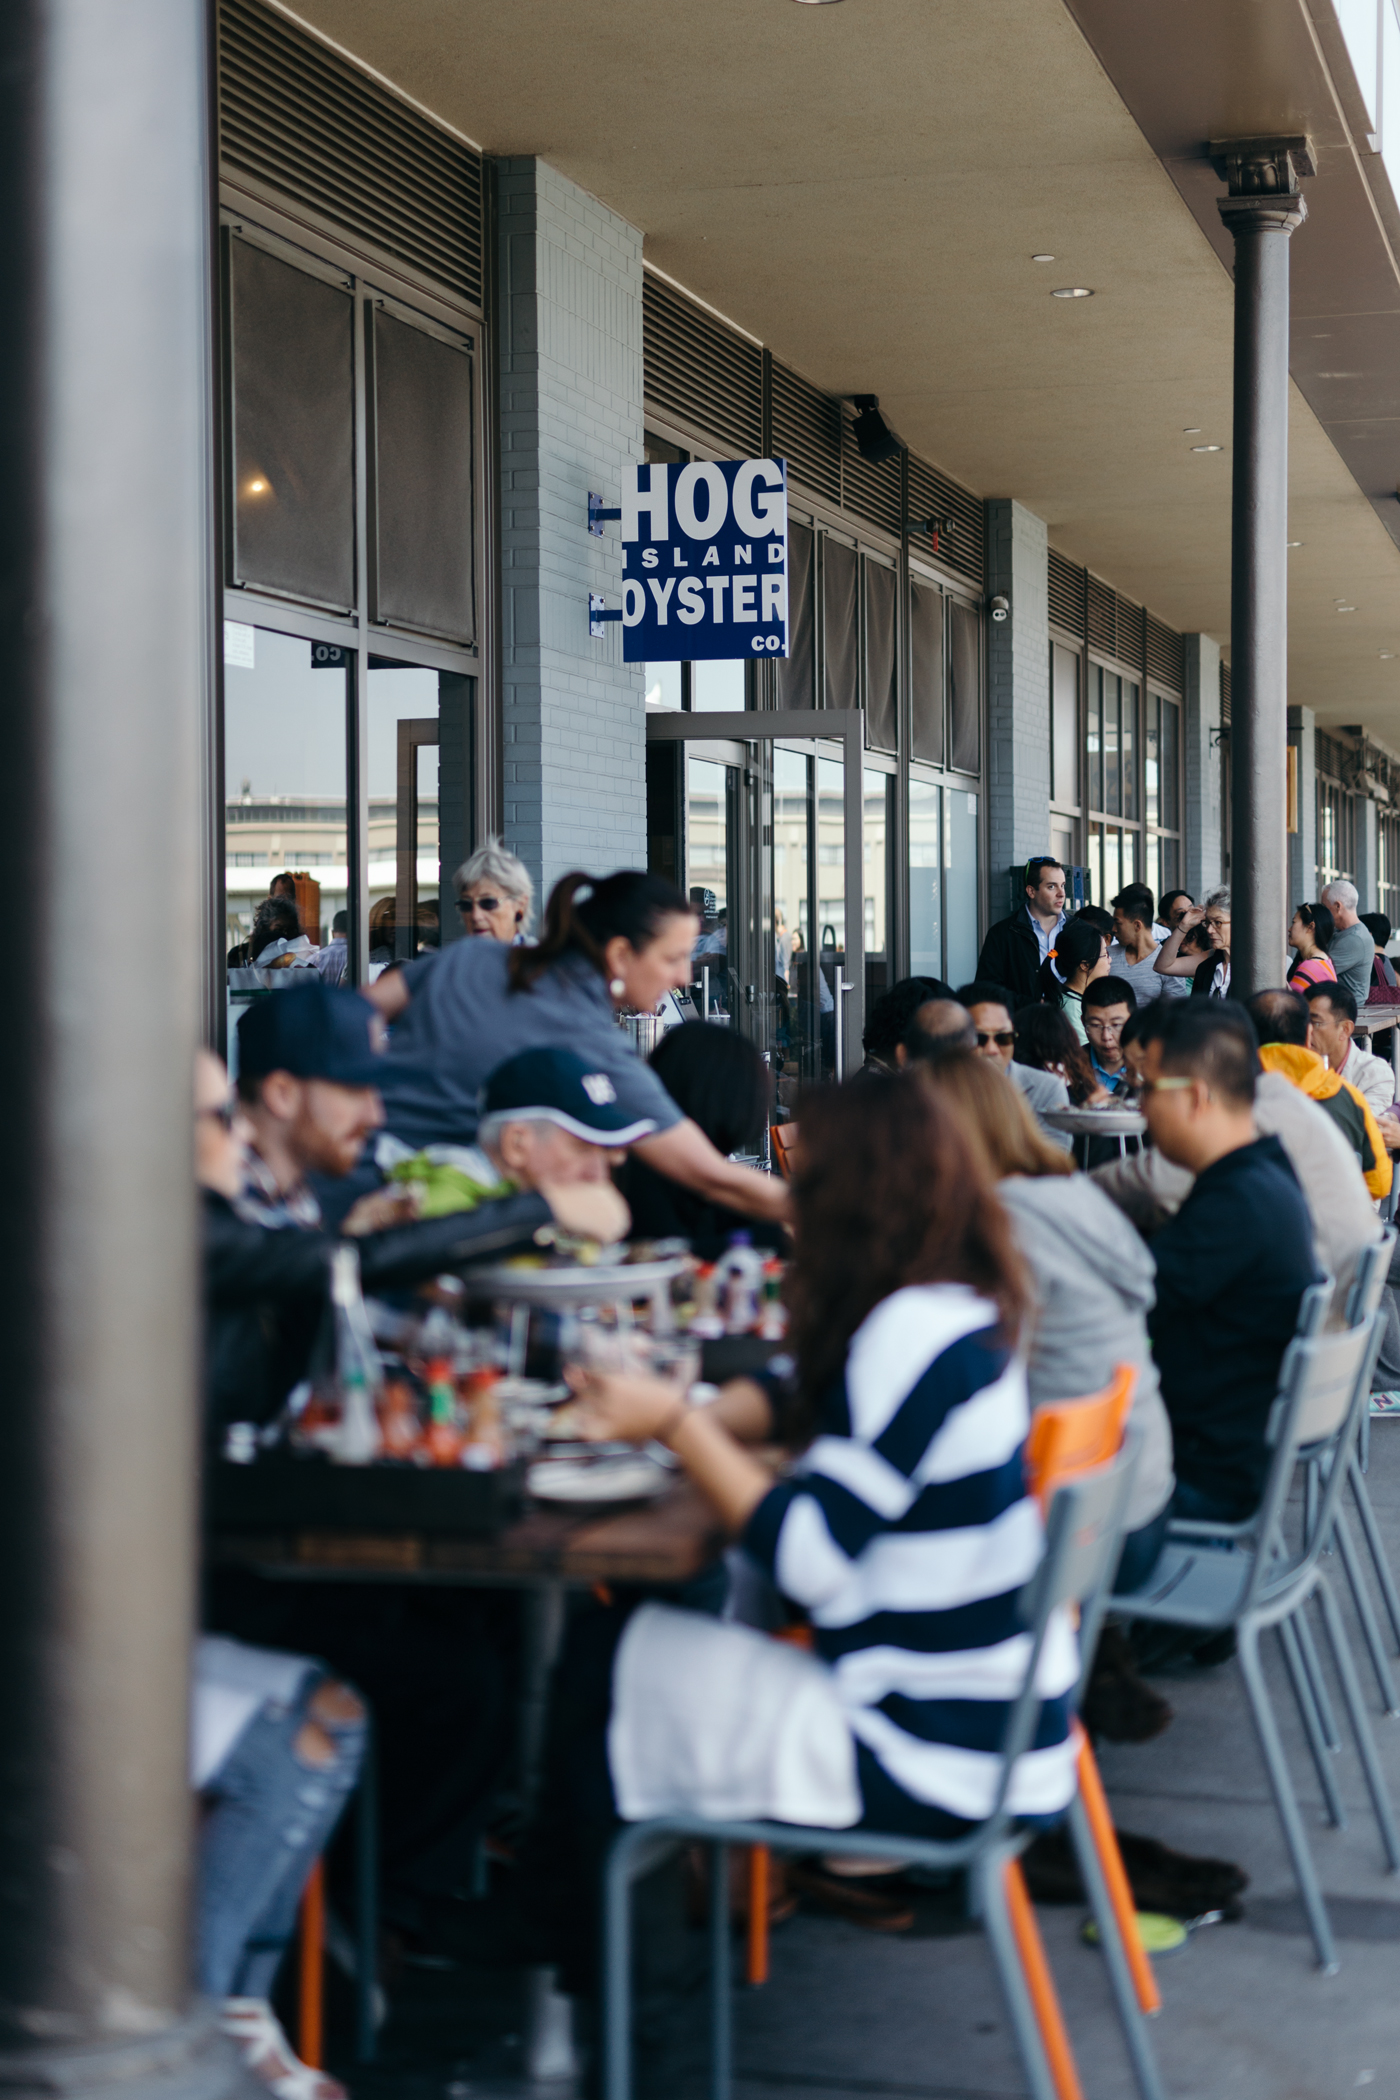 San Francisco Restaurant Series: Hog Island Oyster Co., Ferry Building, San Francisco.